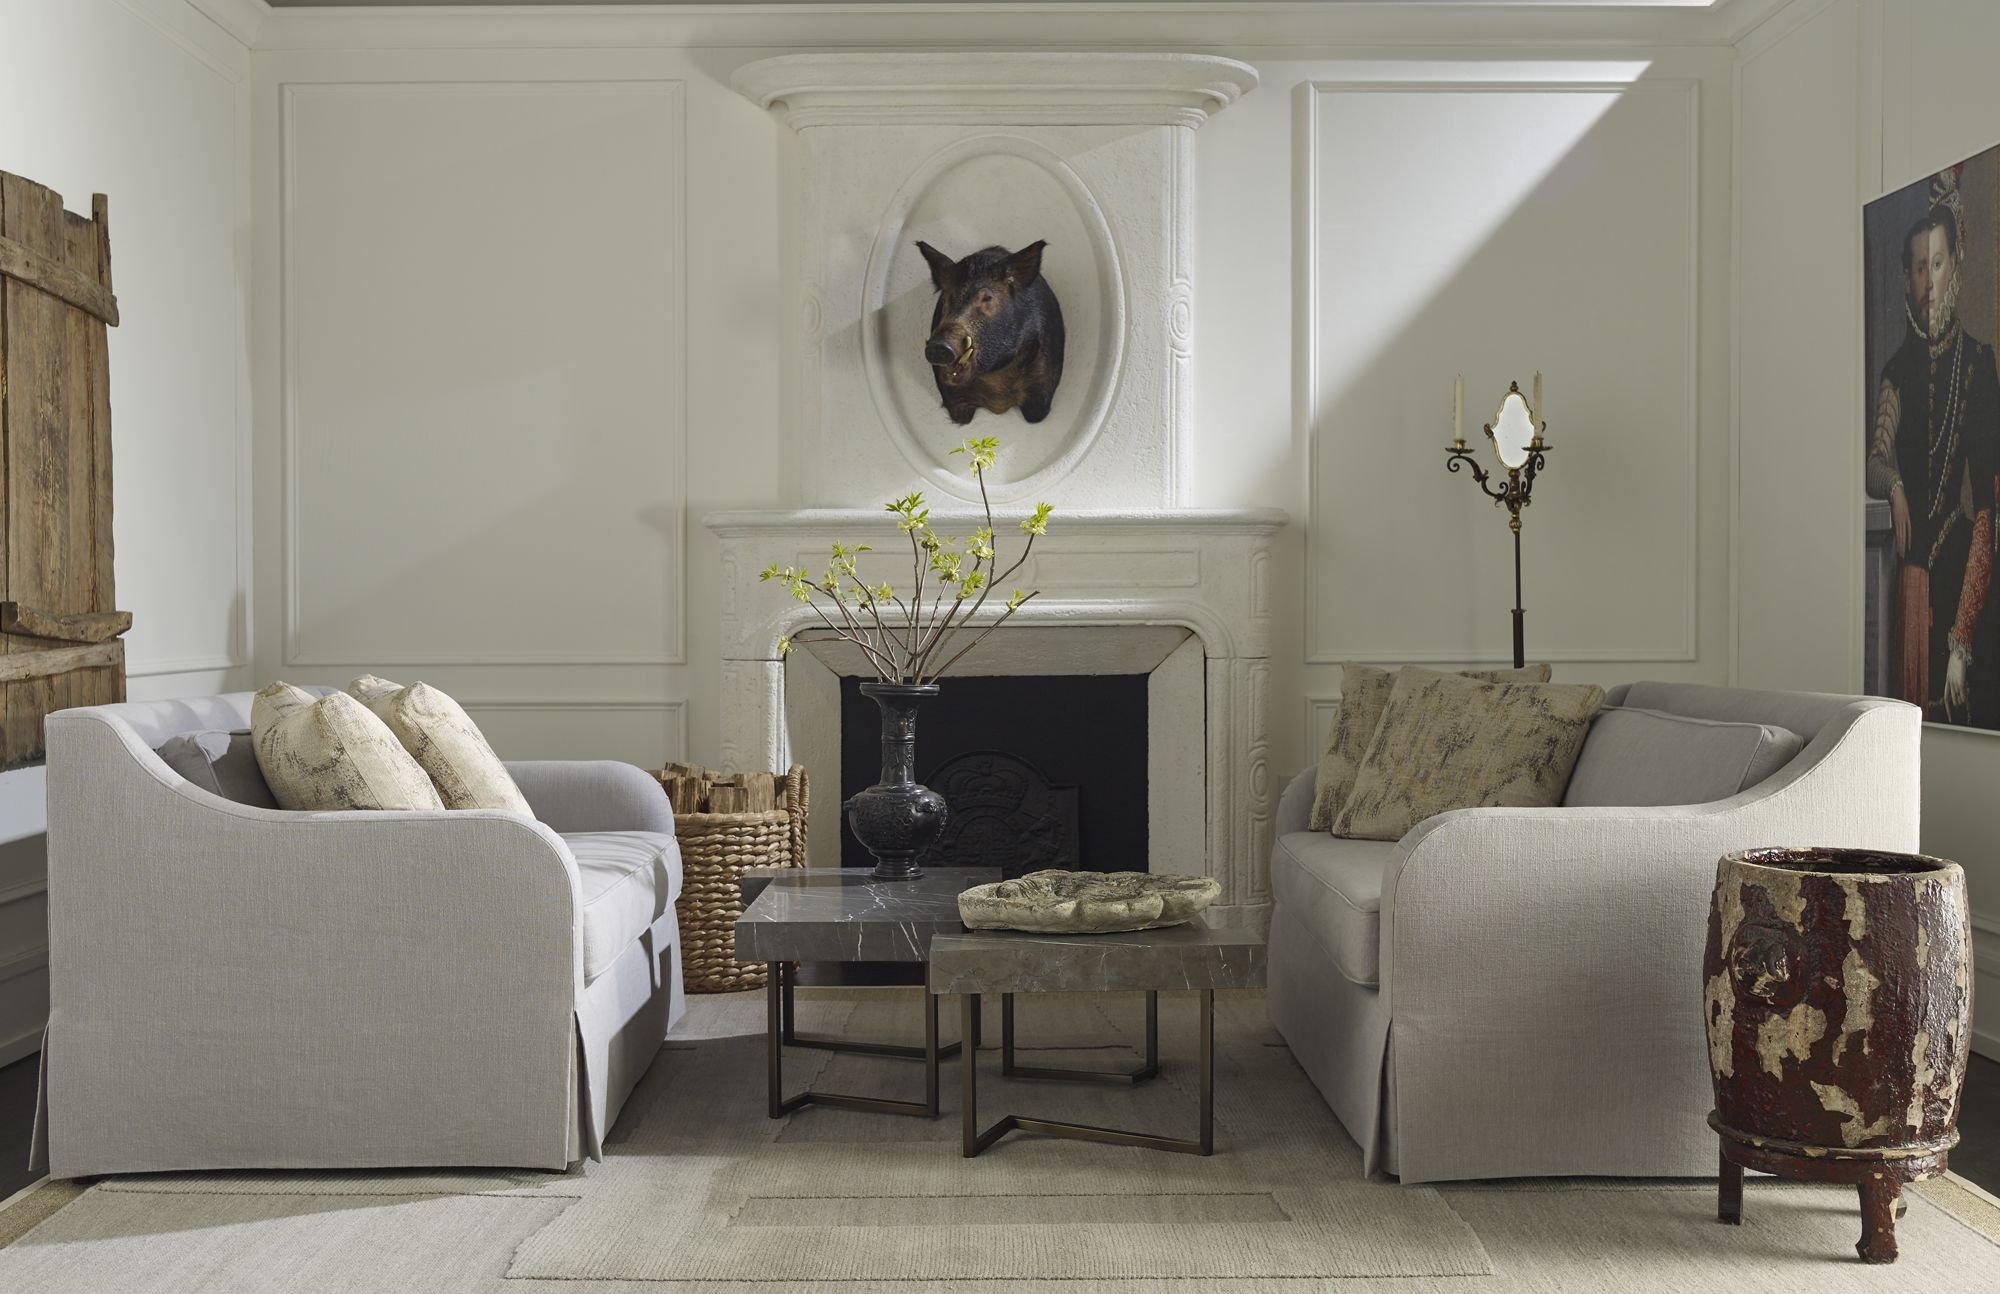 Baker Kdrshowrooms Com Products Furnishings In 2020